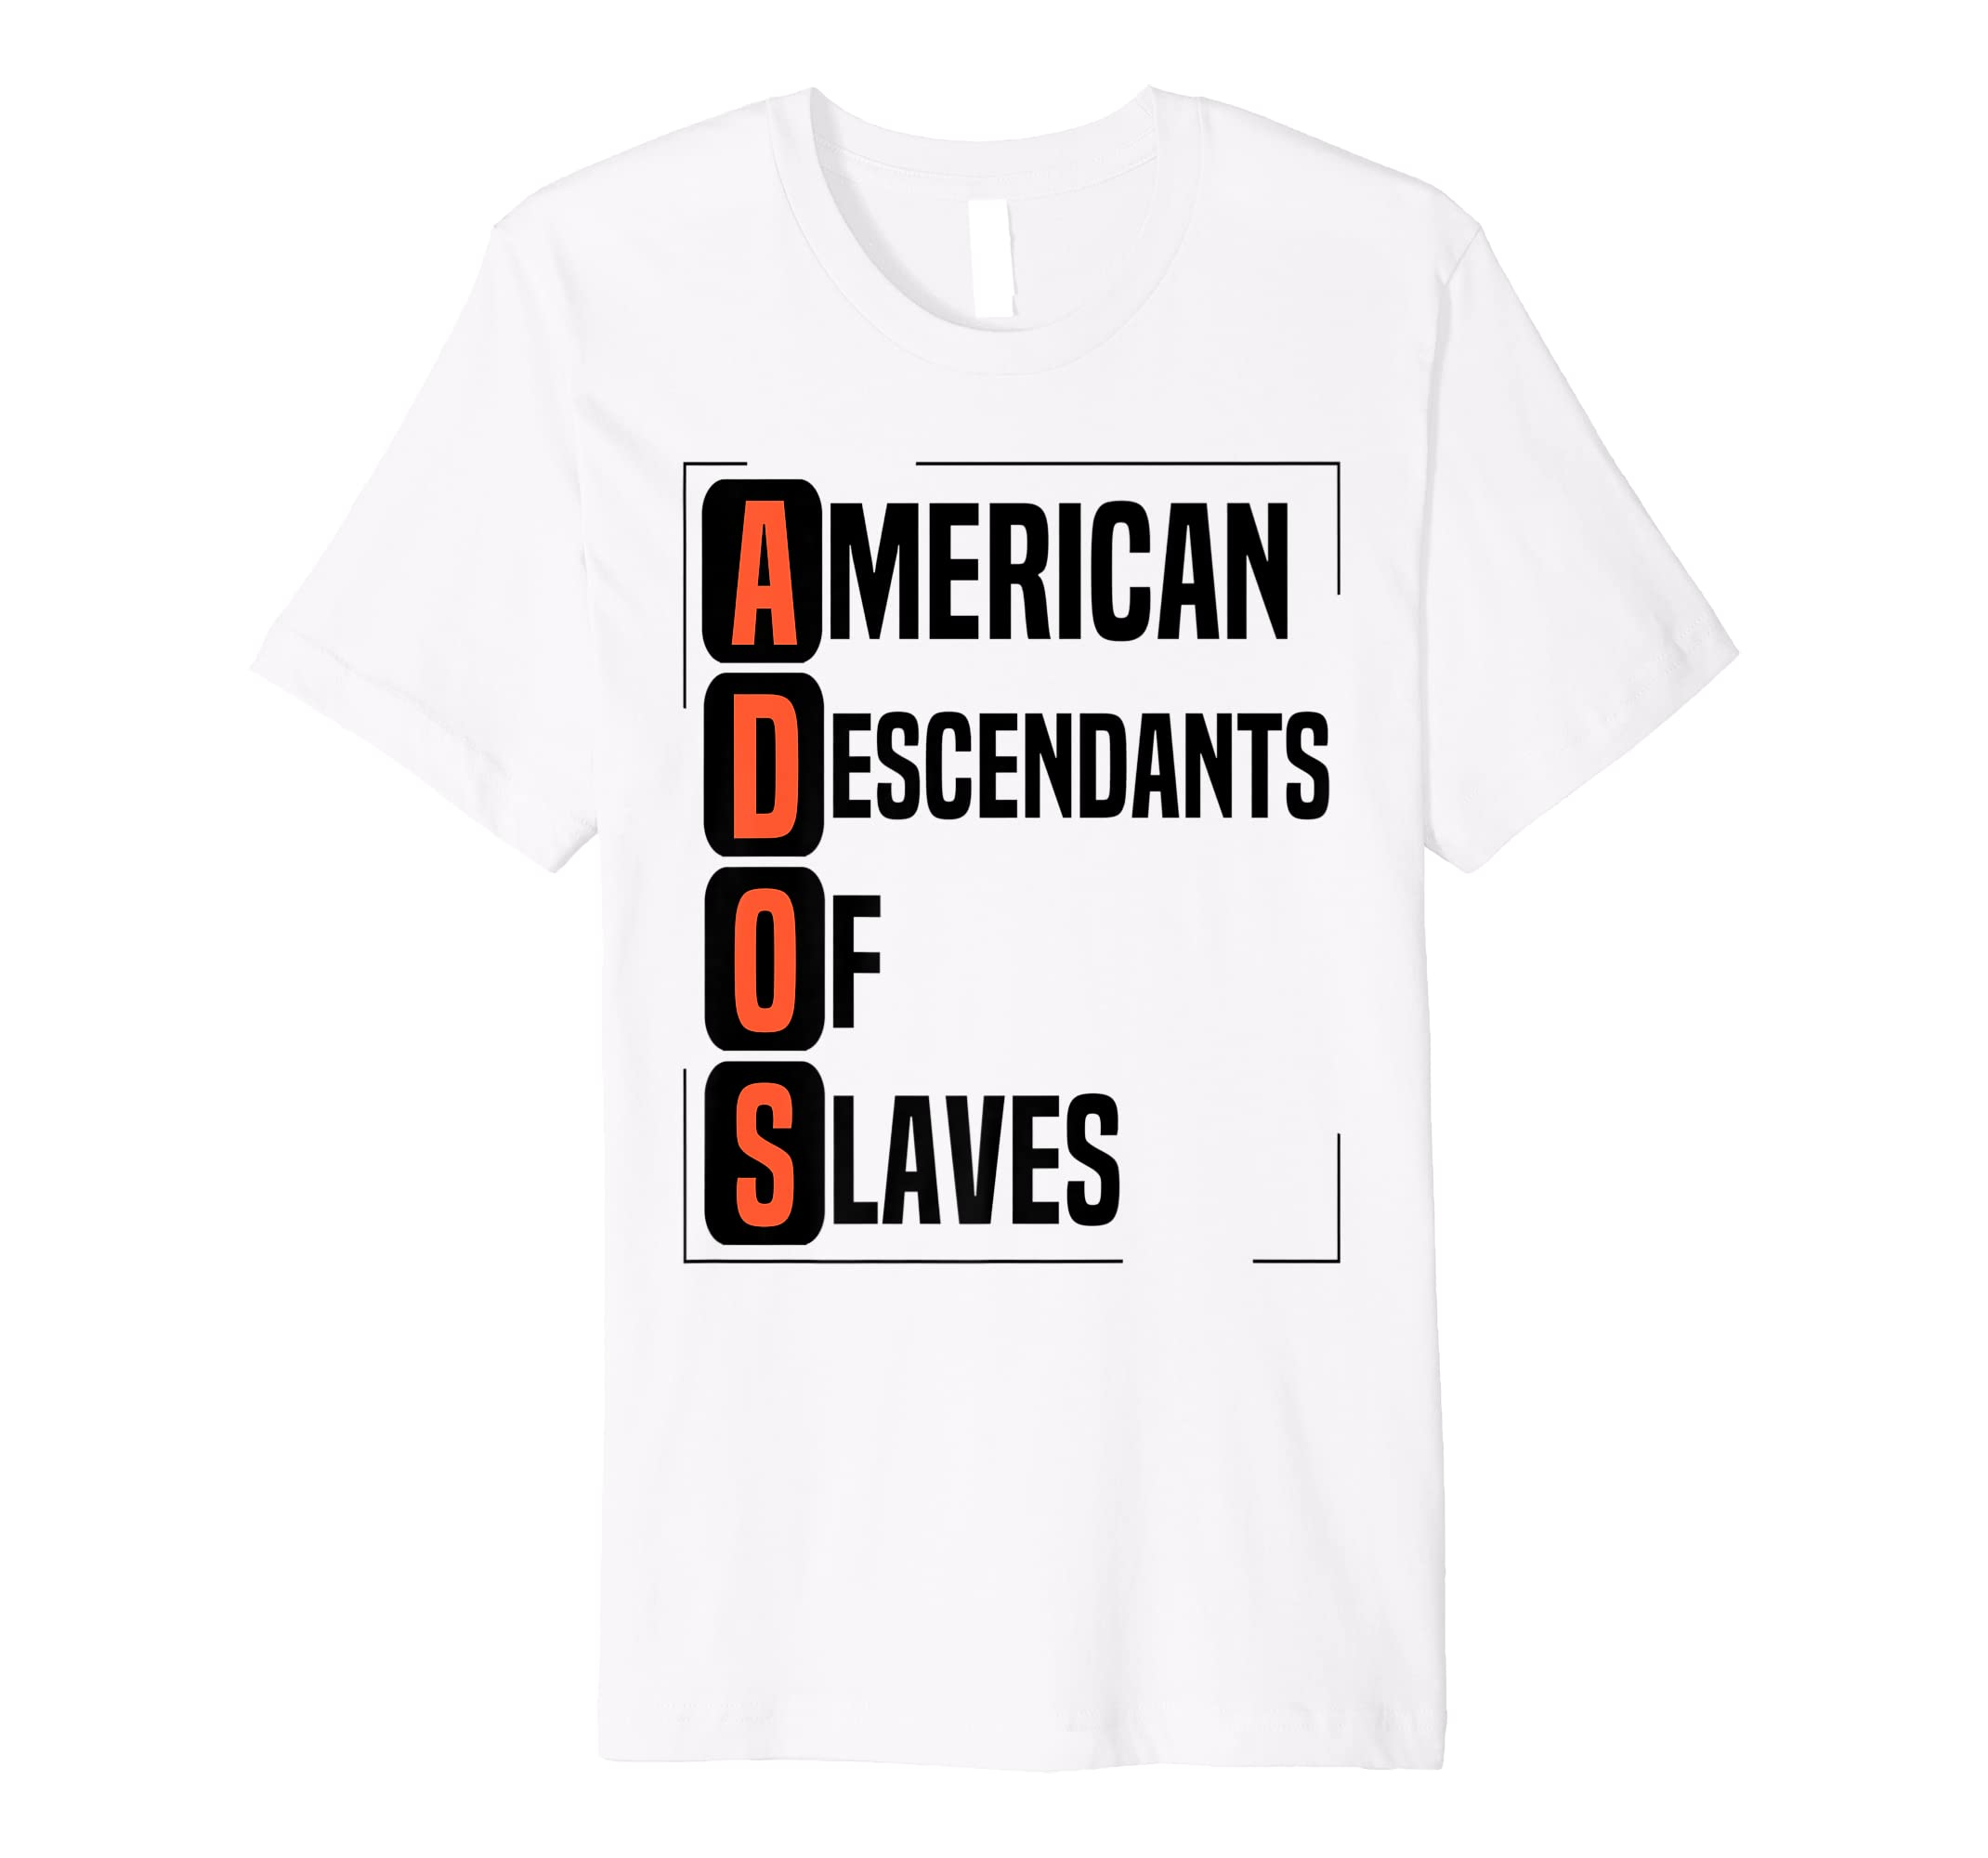 American Descendants of Slaves T-Shirt #ADOS Reparations-ANZ